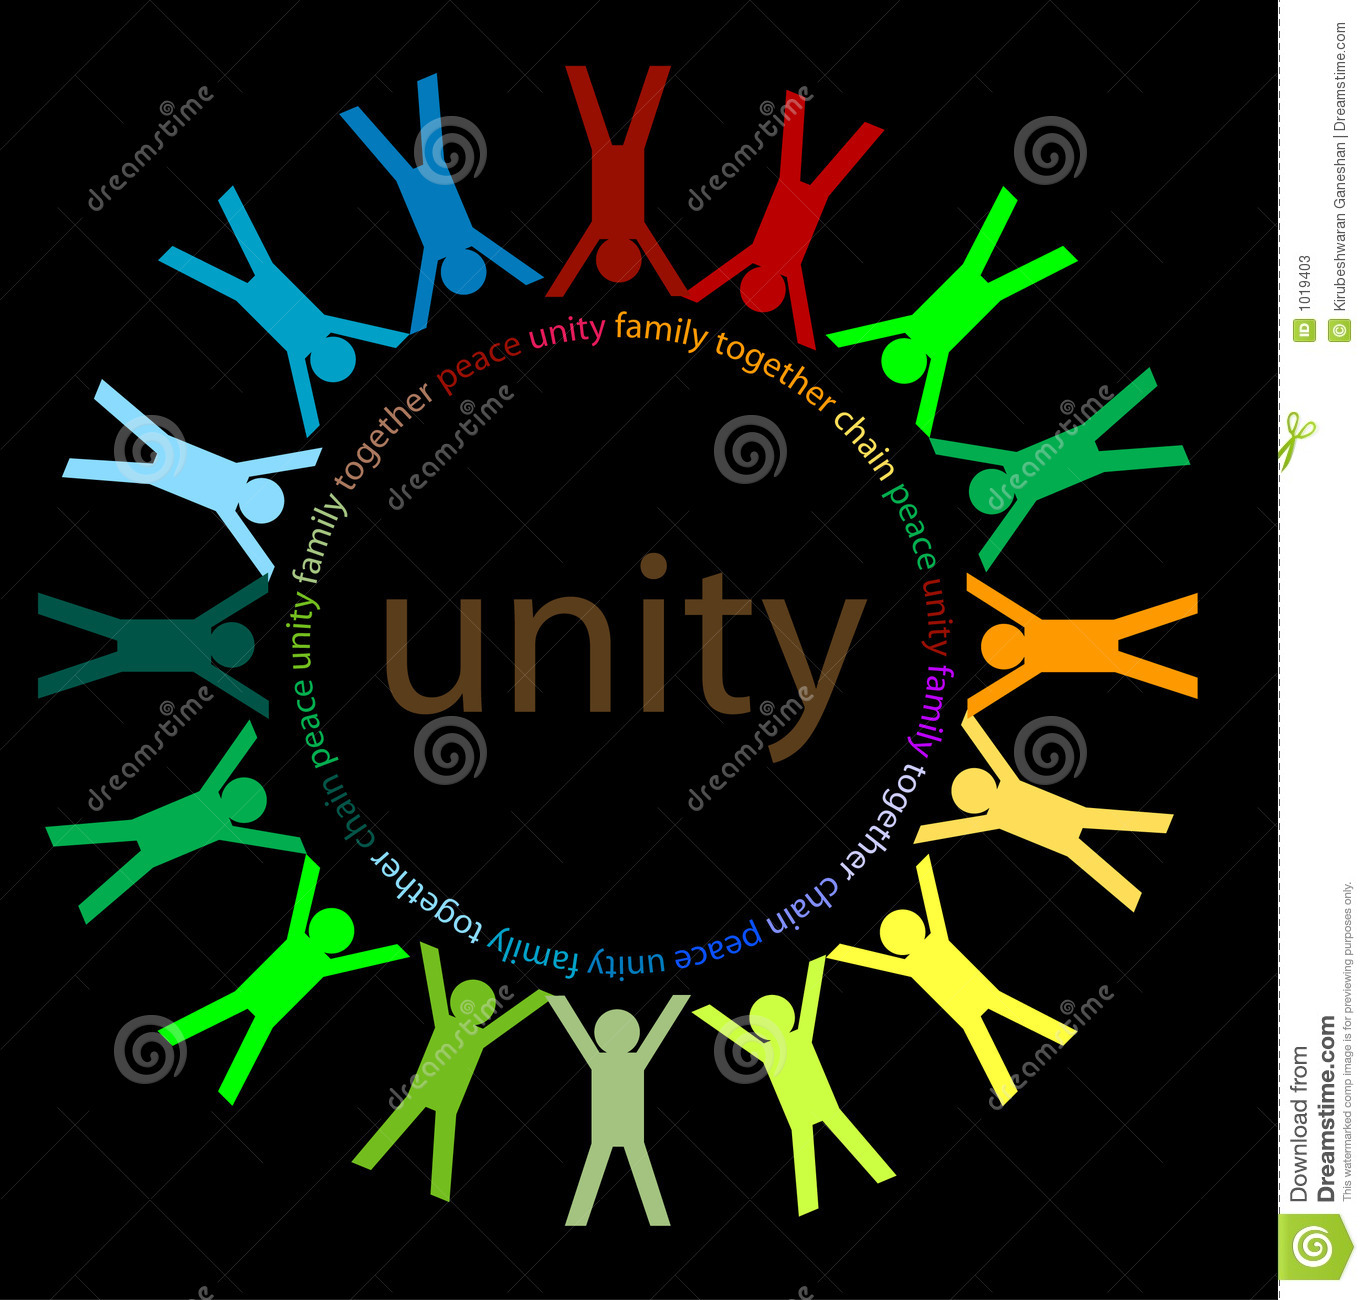 unity and peace stock photos image 1019403